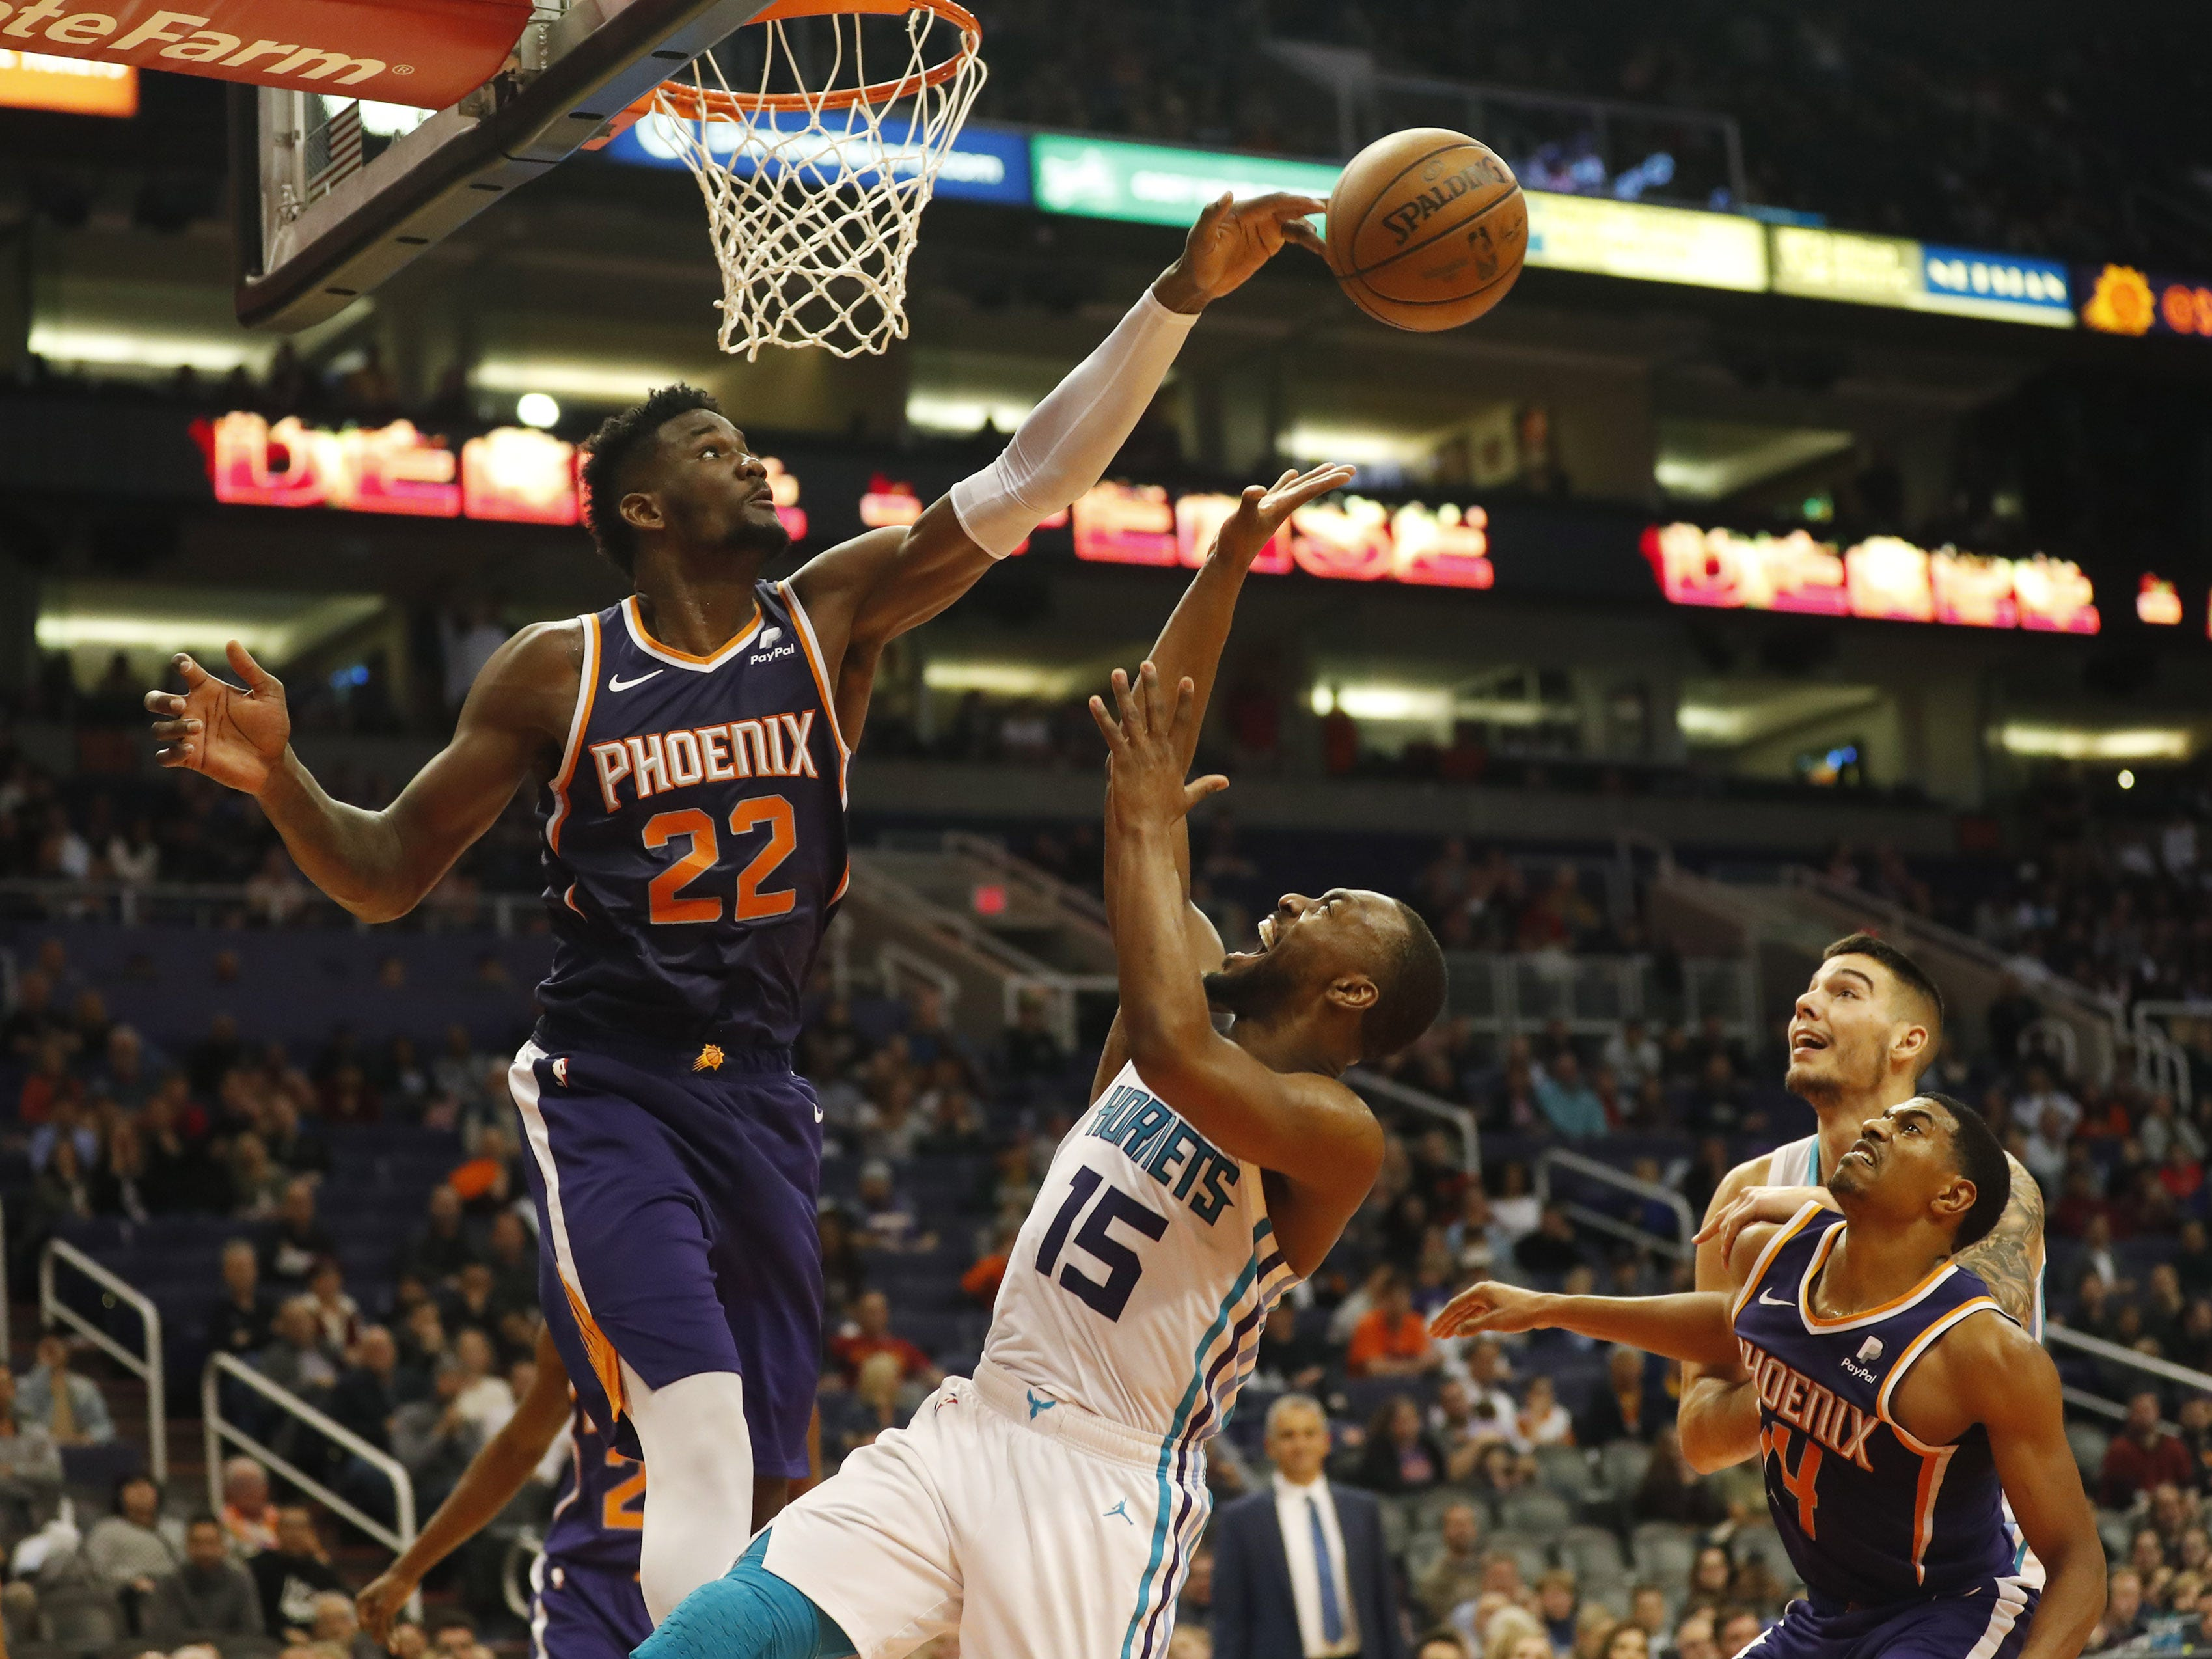 Phoenix Suns center Deandre Ayton (22) blocks a shot by Charlotte Hornets guard Kemba Walker (15) during the fourth quarter in Phoenix January 6, 2019.